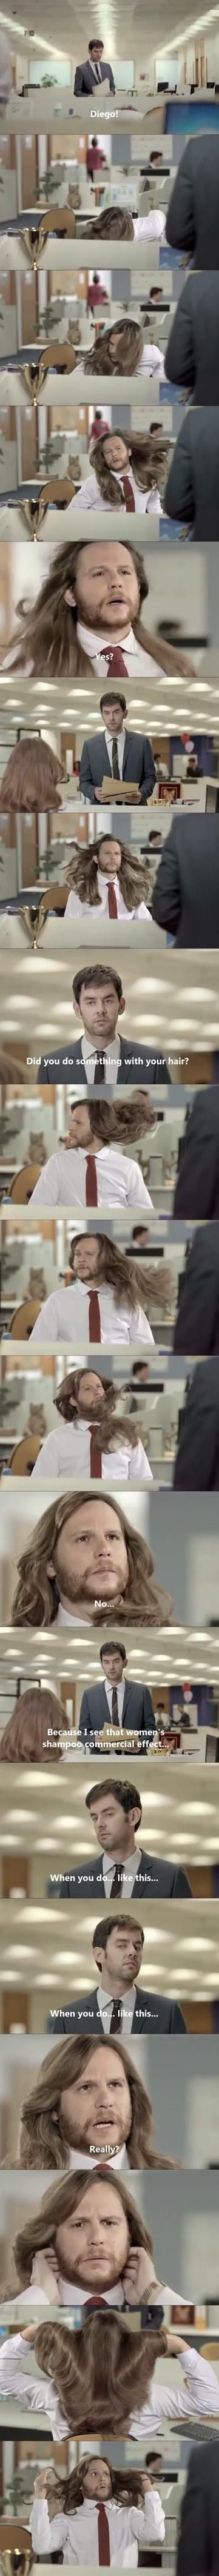 The L'oreal Effect